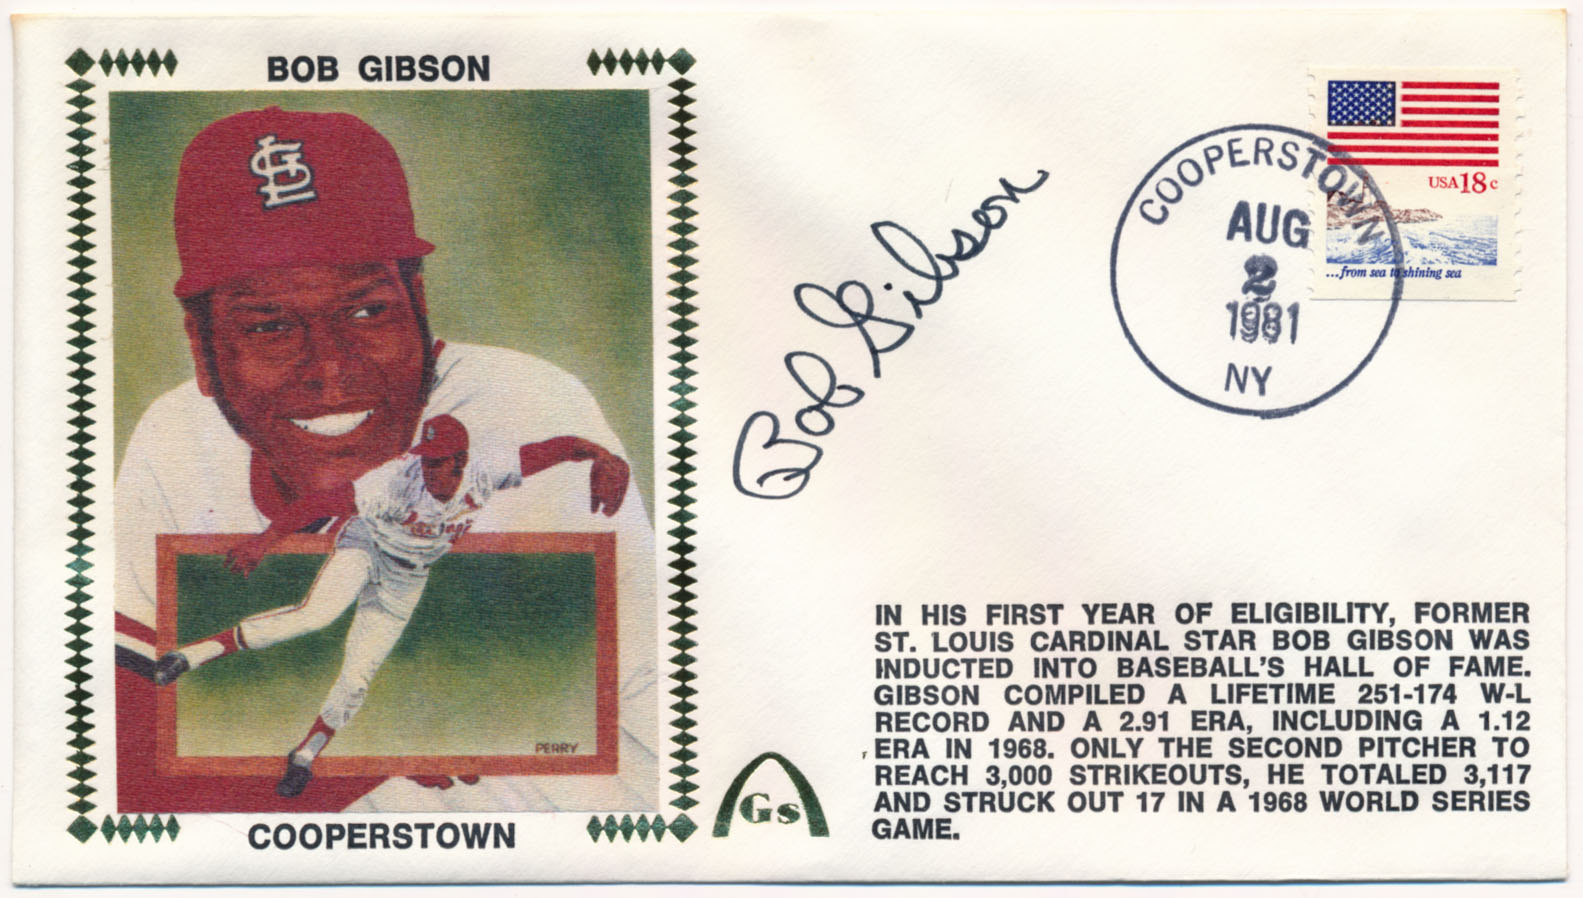 Lot #215  Cachet  Gibson (8/2/81) Cond: 9.5